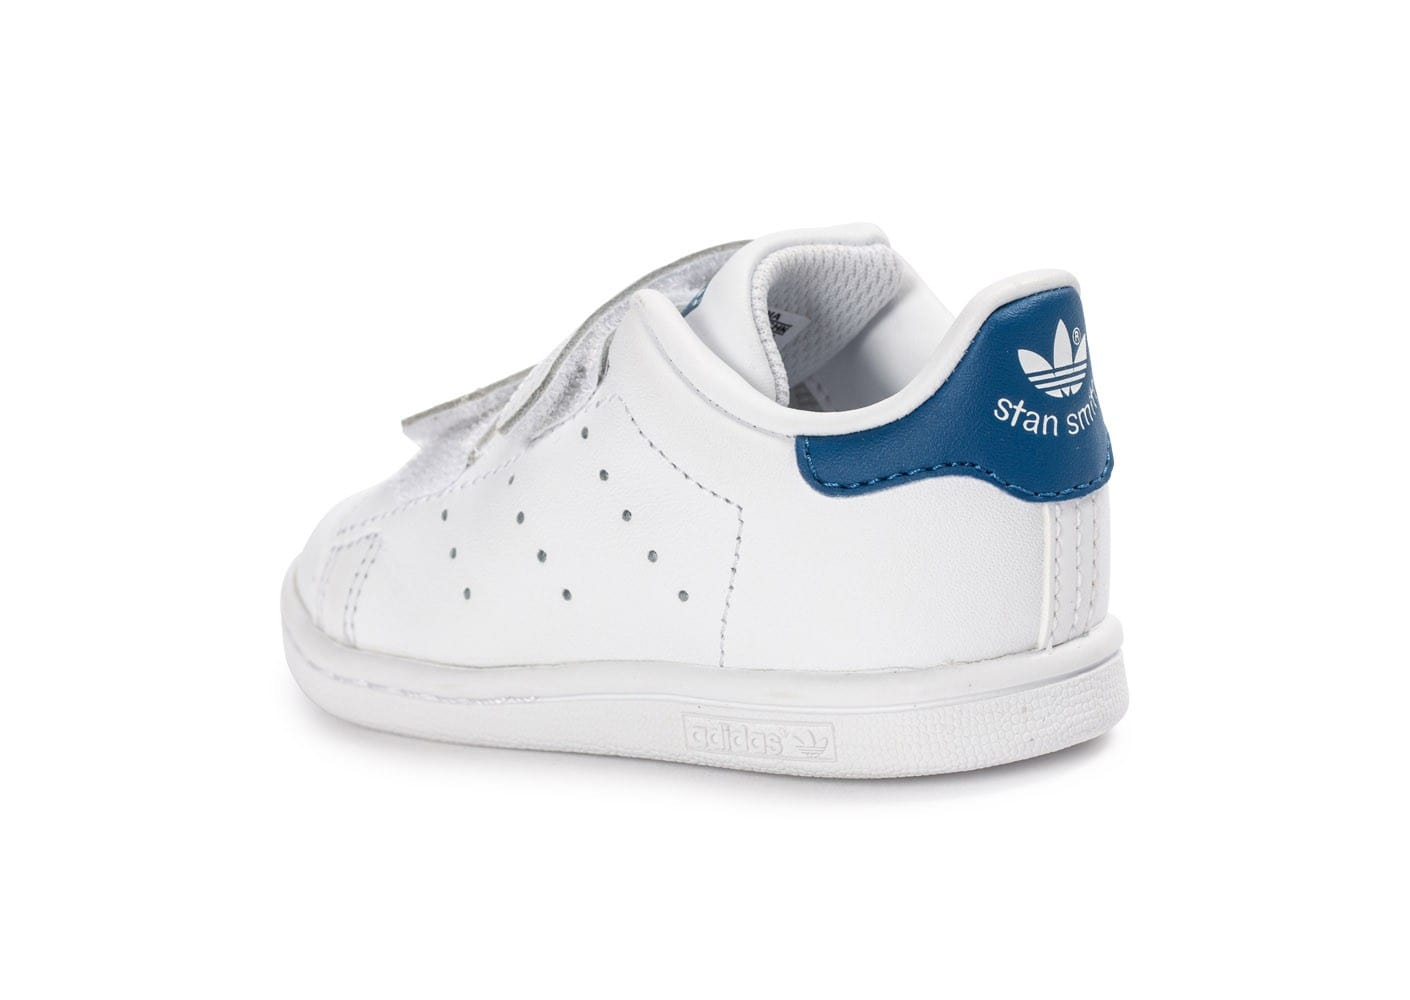 adidas stan smith b b blanche et bleue chaussures. Black Bedroom Furniture Sets. Home Design Ideas